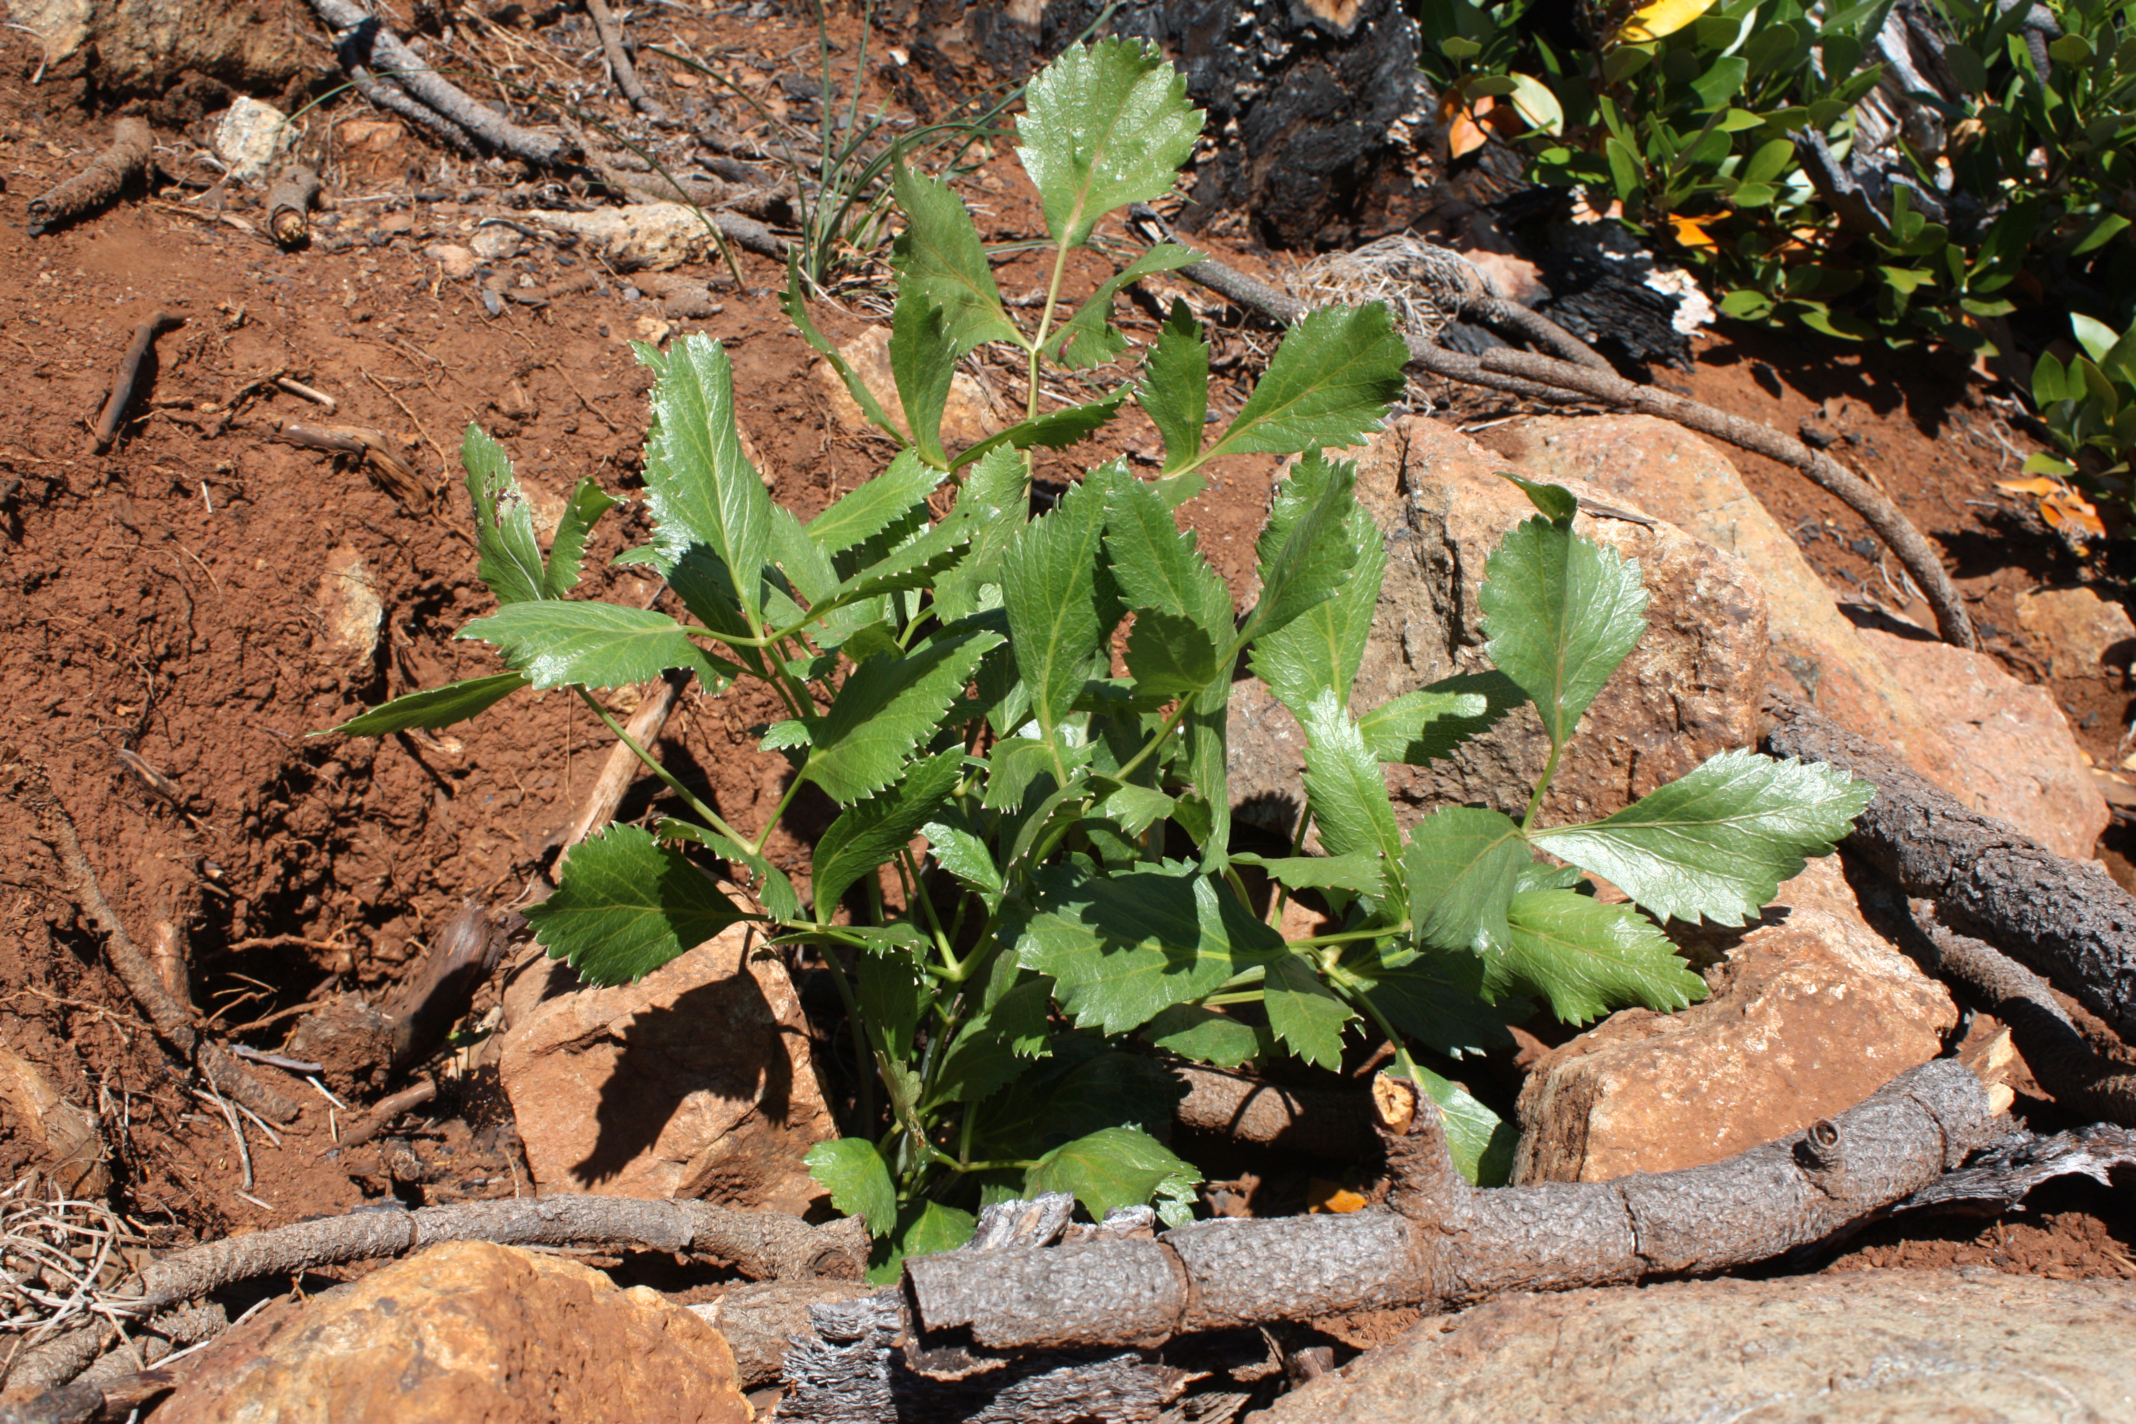 After its root was harvested the previous year, the replanted crown of this sharptooth angelica is sprouting new leaves.© Scott Kloos. 2015. All Rights Reserved.